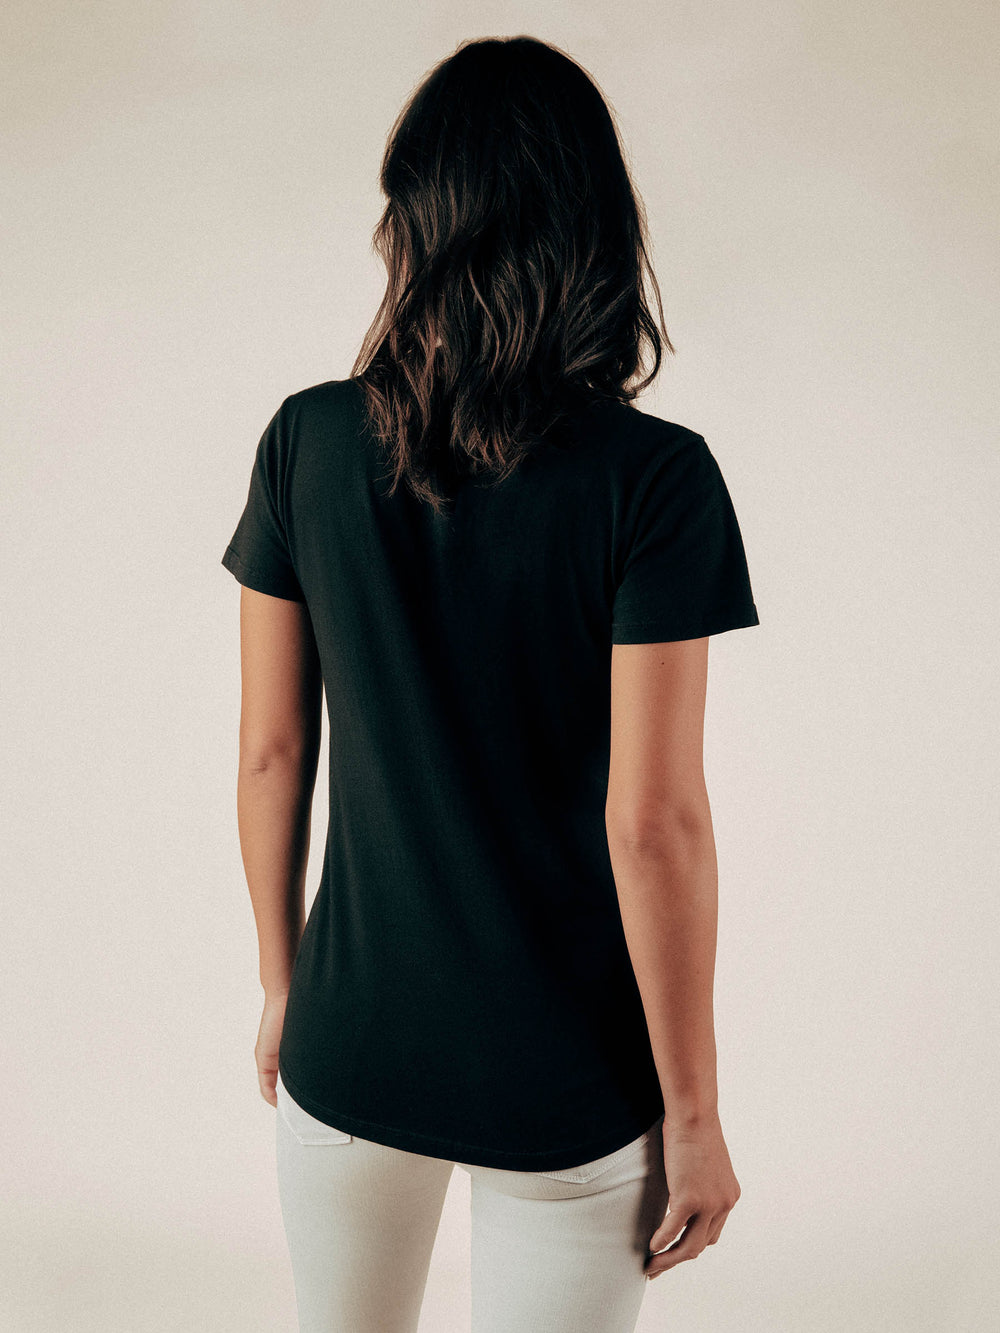 Black V-Neck Curved Hem Tee - Graceful District